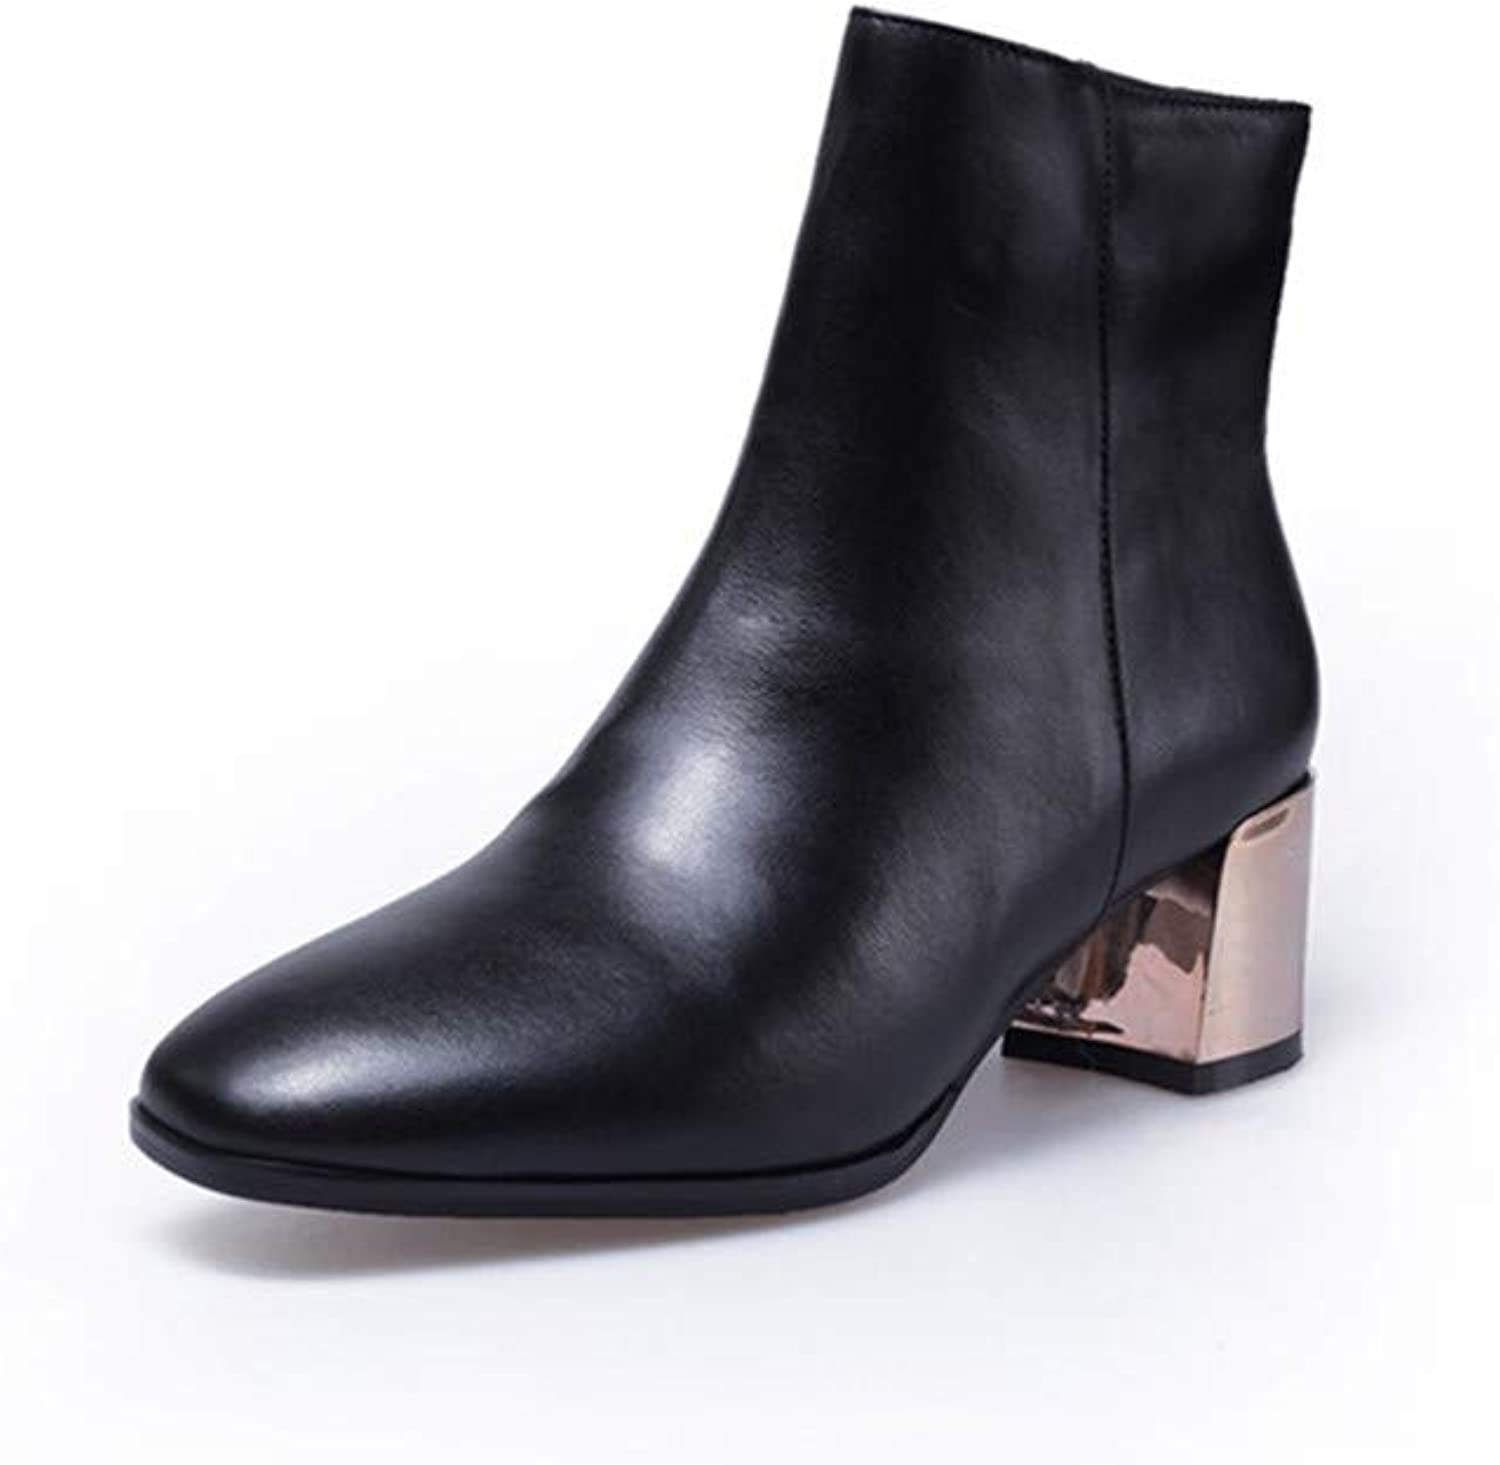 Nine Seven Genuine Leather Women's Round Toe Mid Chunky Glossy Heel Fashion Side Zip Handmade Concise Women Ankle High Boots